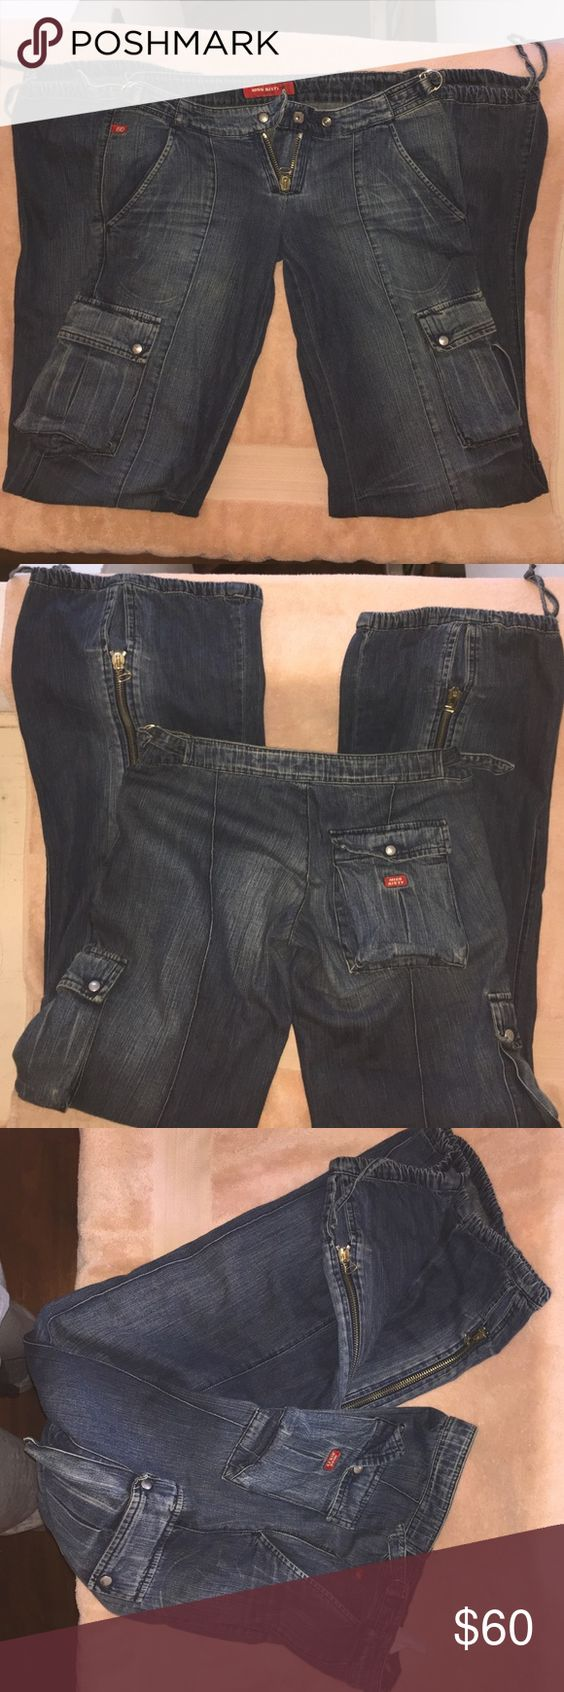 Miss Sixty Jeans Miss Sixty Parachute Jeans sz 24, Silver Hardware. Miss Sixty Jeans Flare & Wide Leg